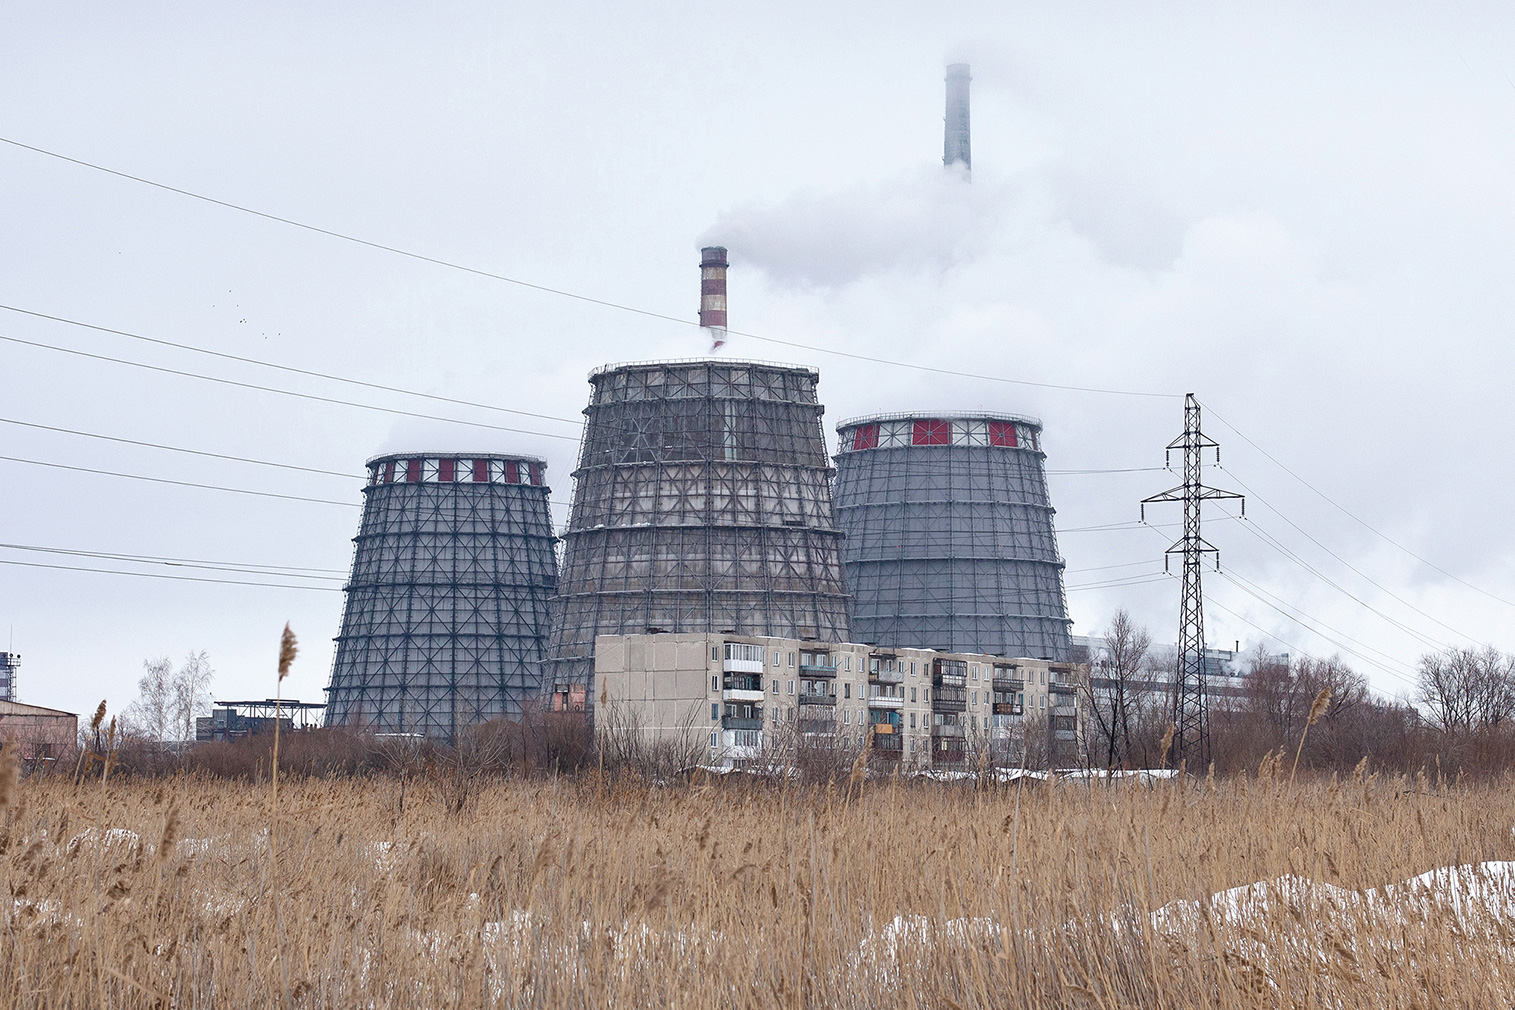 TETs-5 electric power station, Tsentralny District, Omsk. Photography: Alexander Veryovkin © Zupagrafika, 2020